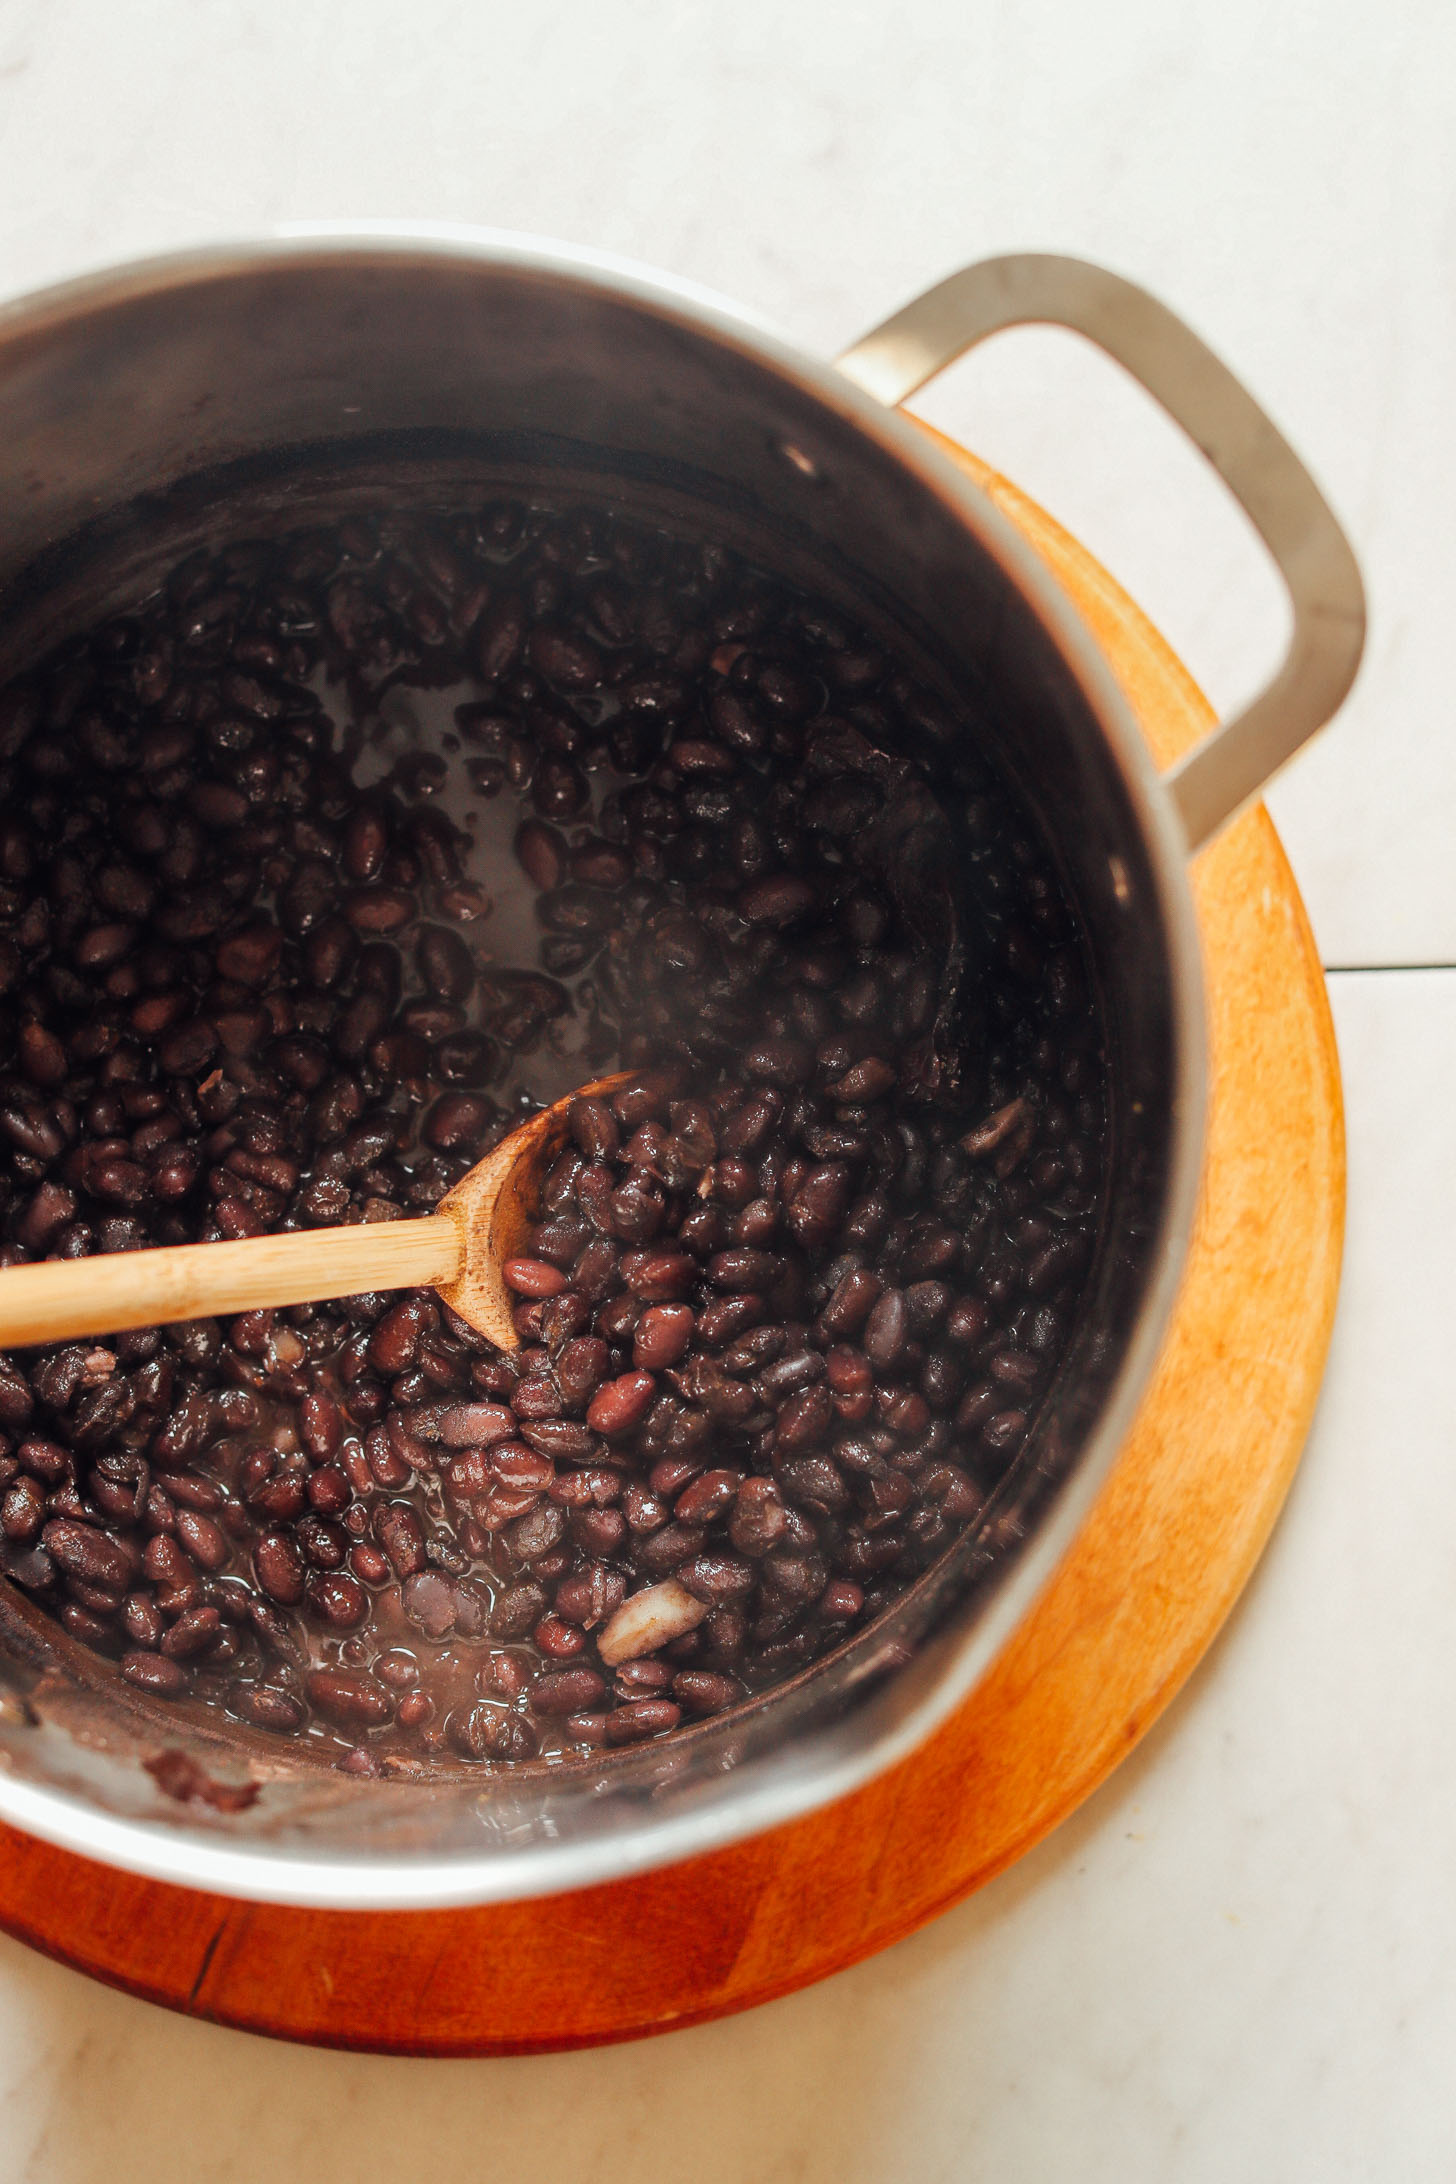 Stirring a large pot of tender, flavorful homemade black beans created using our Easy 1-Pot Black Beans recipe